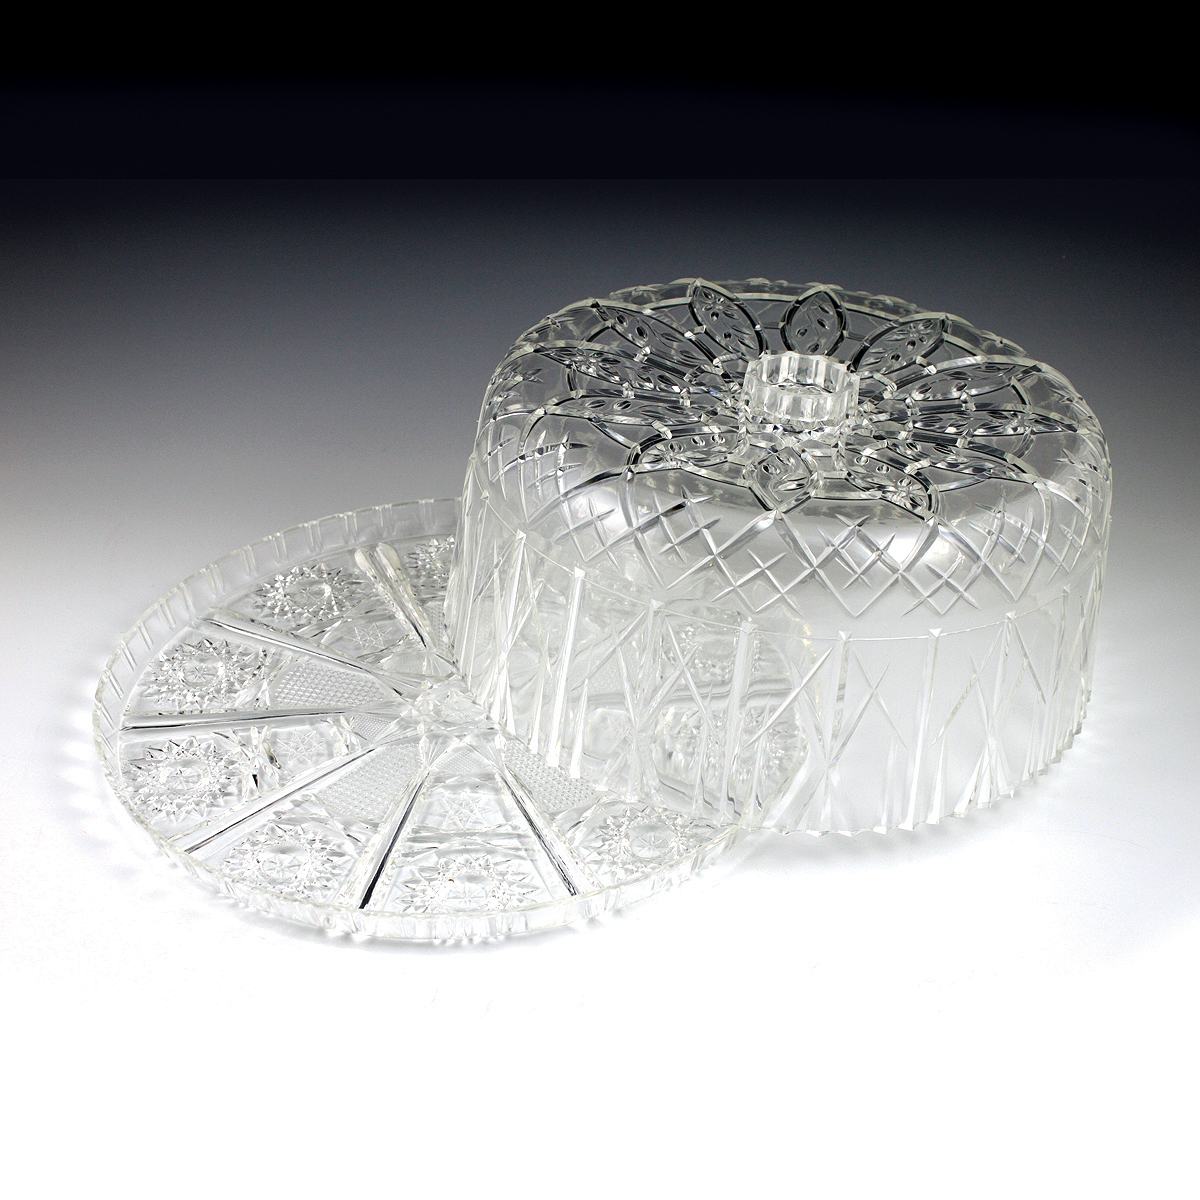 Crystalware Crystal Cut Cake Plate & Cover | Plastic Cups, Utensils ...